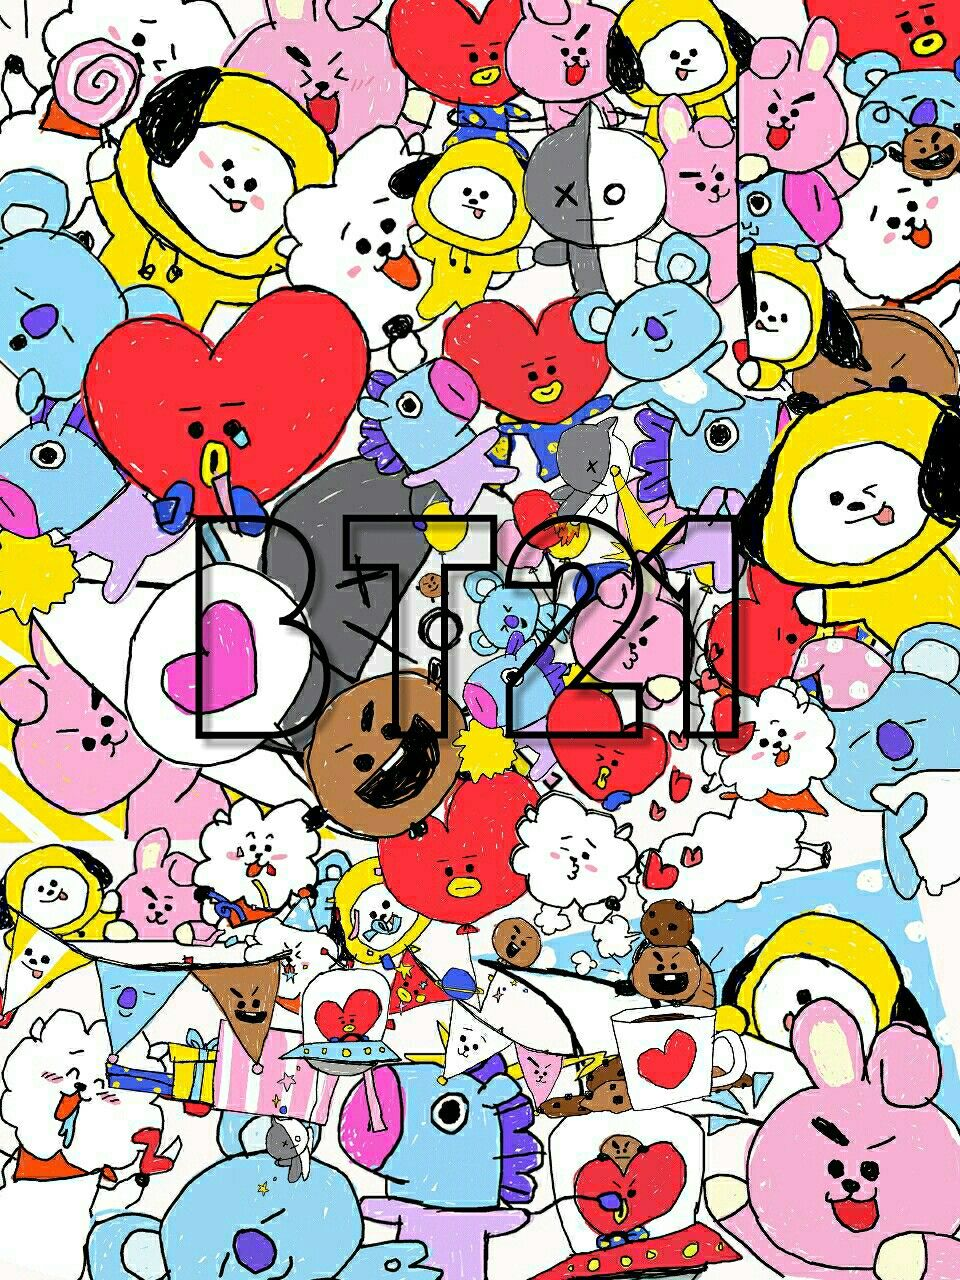 Bts BT21 wallpapers background BTS Pinterest BTS 960x1280